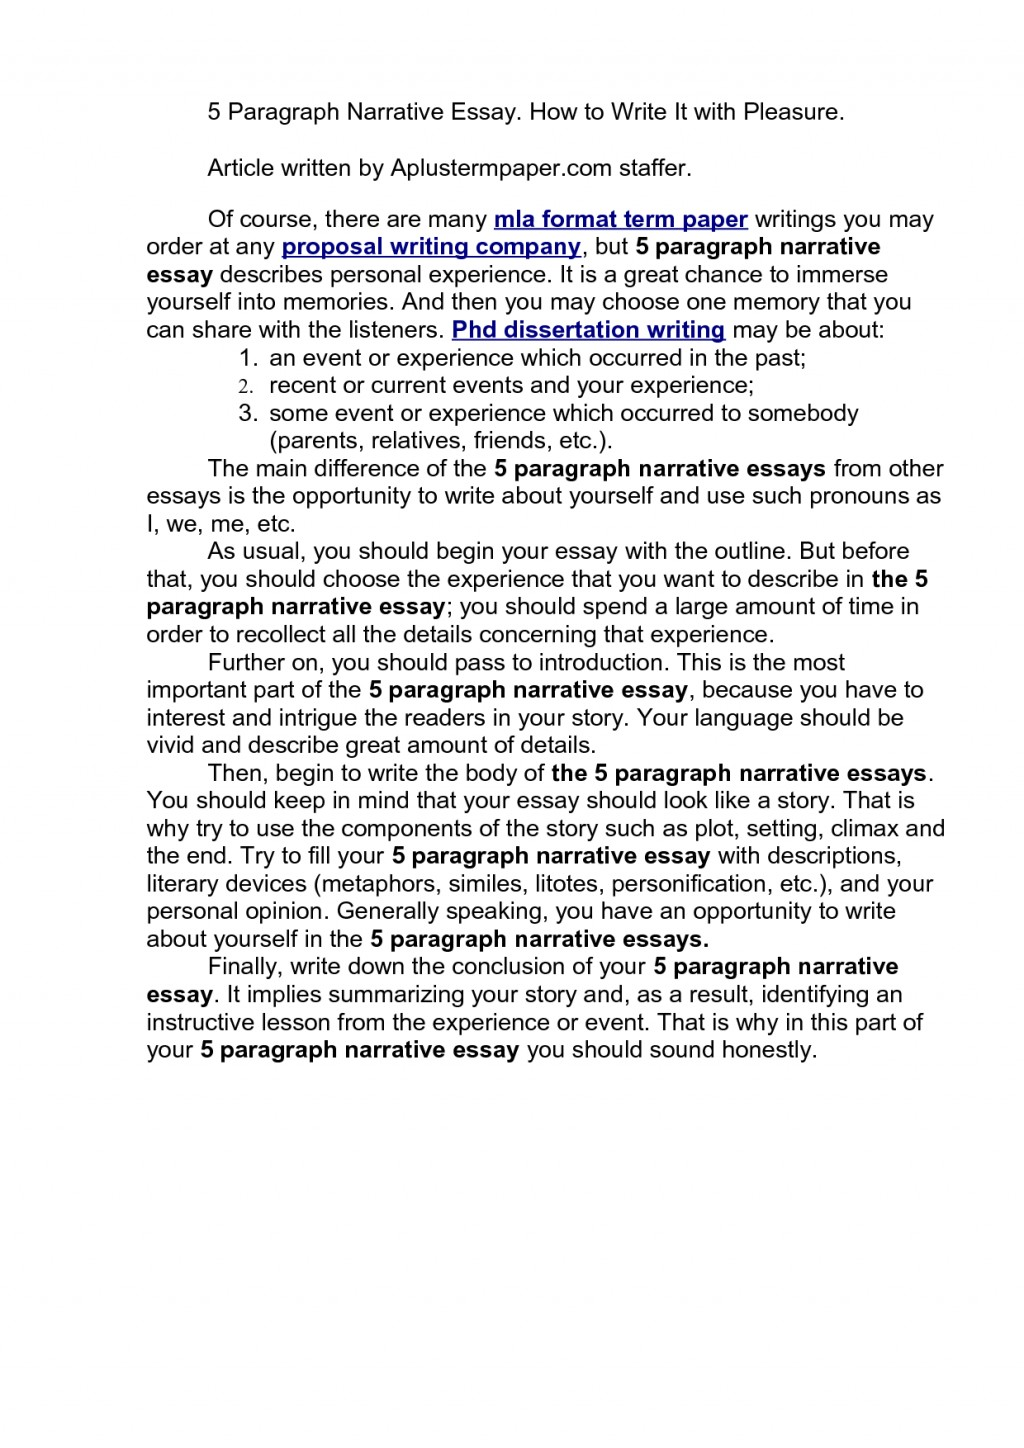 004 College Essay Conclusion Ideas Of Narrative Stories Example Epic Examples Essays Surprising Good For Application Large